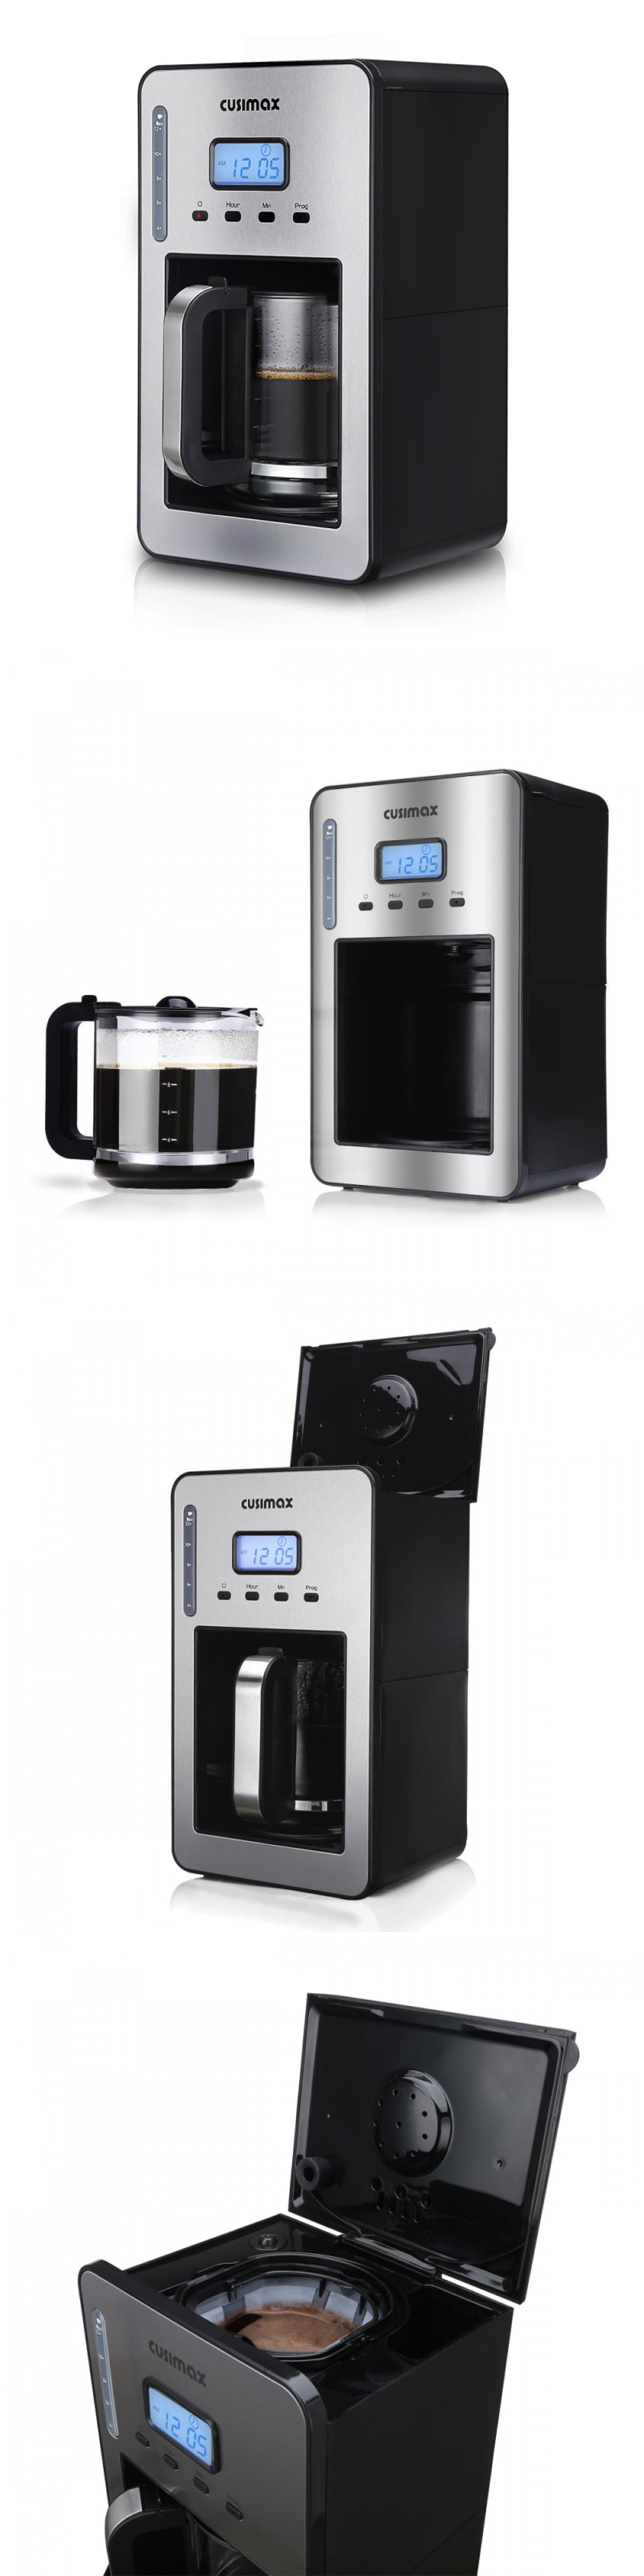 Appliances cusimax w cup programmable coffee maker with lcd